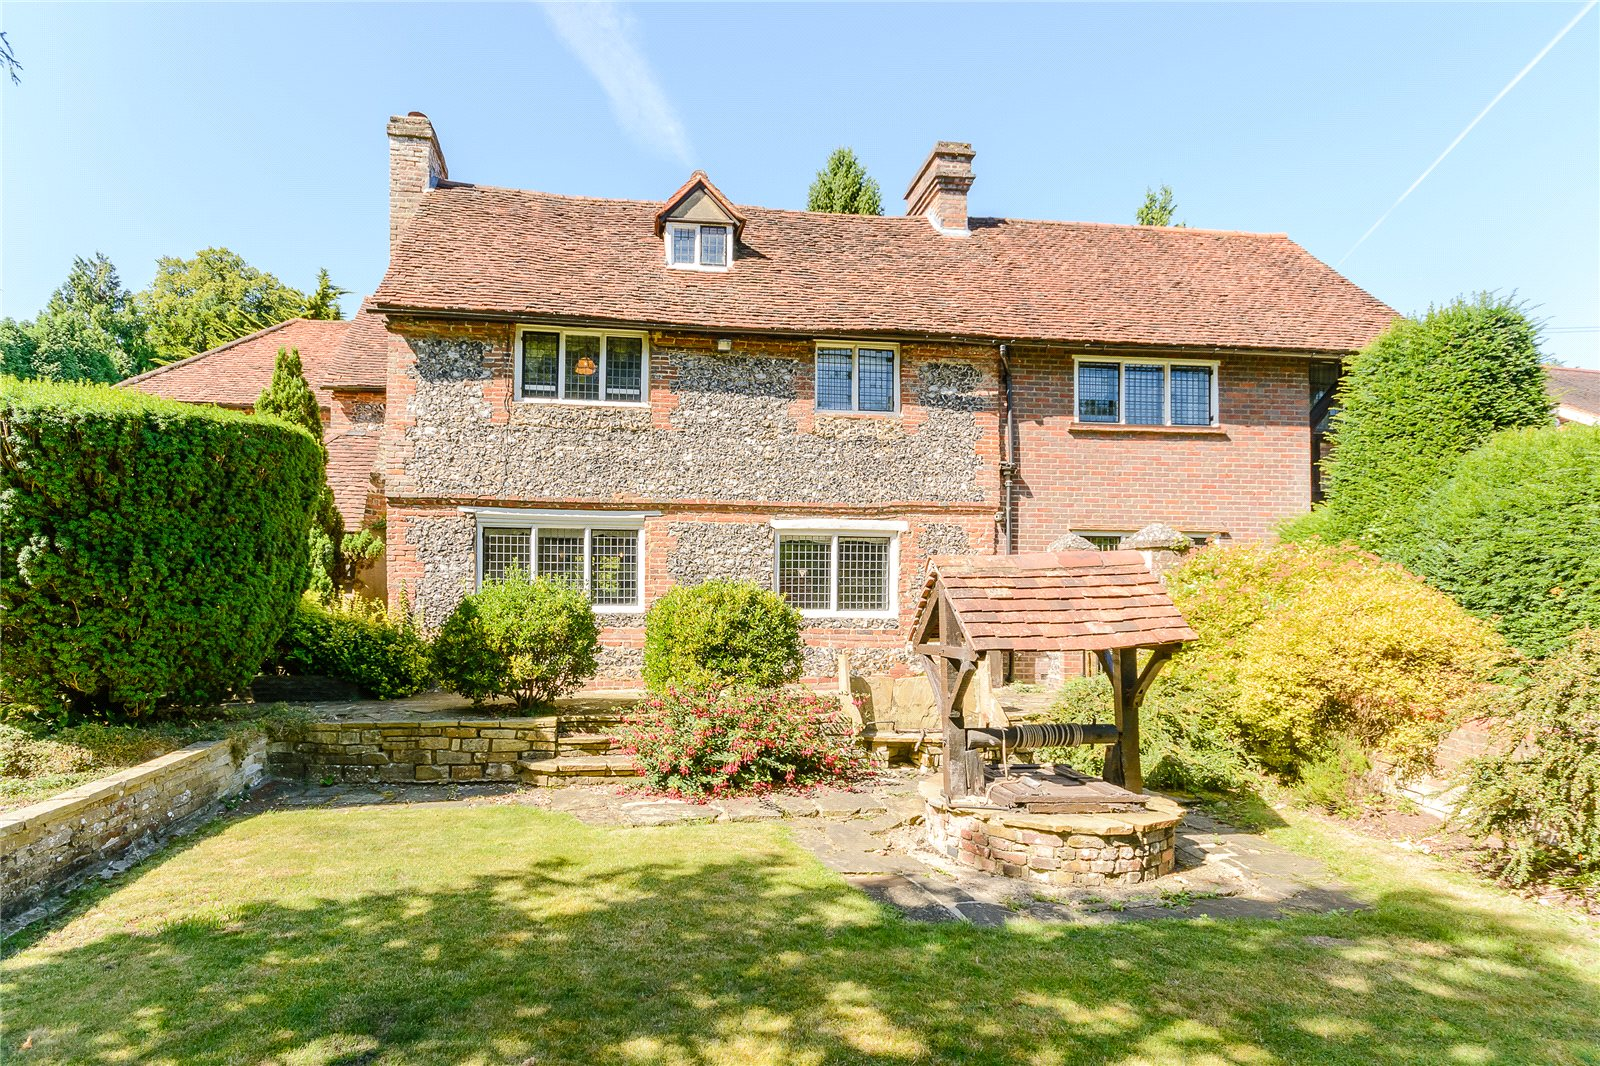 Additional photo for property listing at Claydon Lane, Chalfont St Peter, Buckinghamshire, SL9 Chalfont St Peter, England